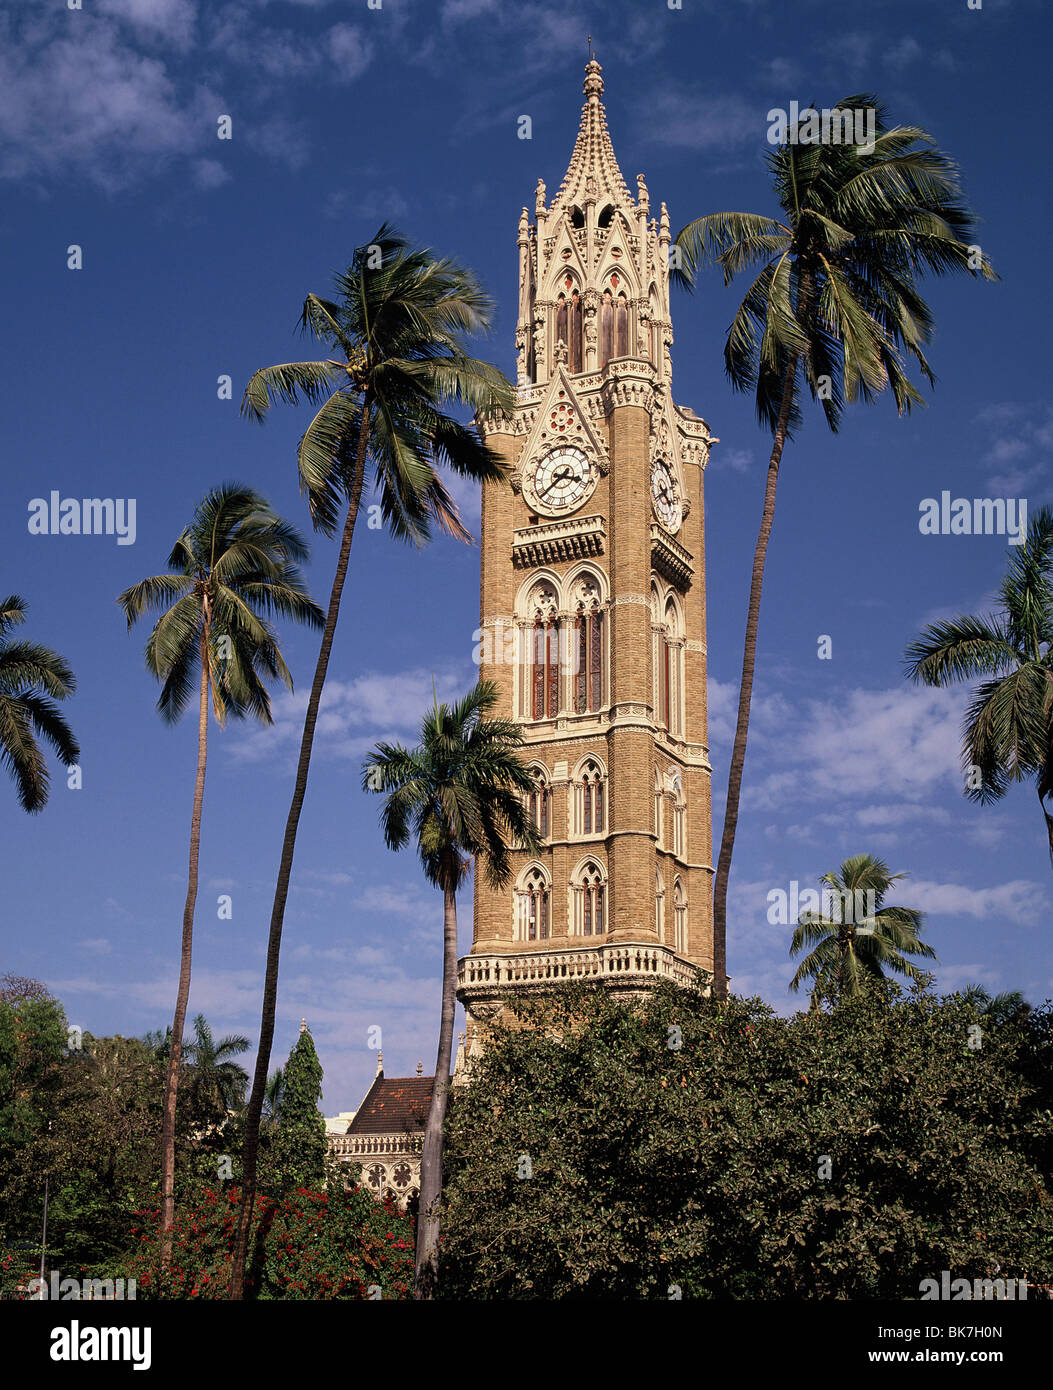 Universidad clocktower, Mumbai, India, Asia Imagen De Stock